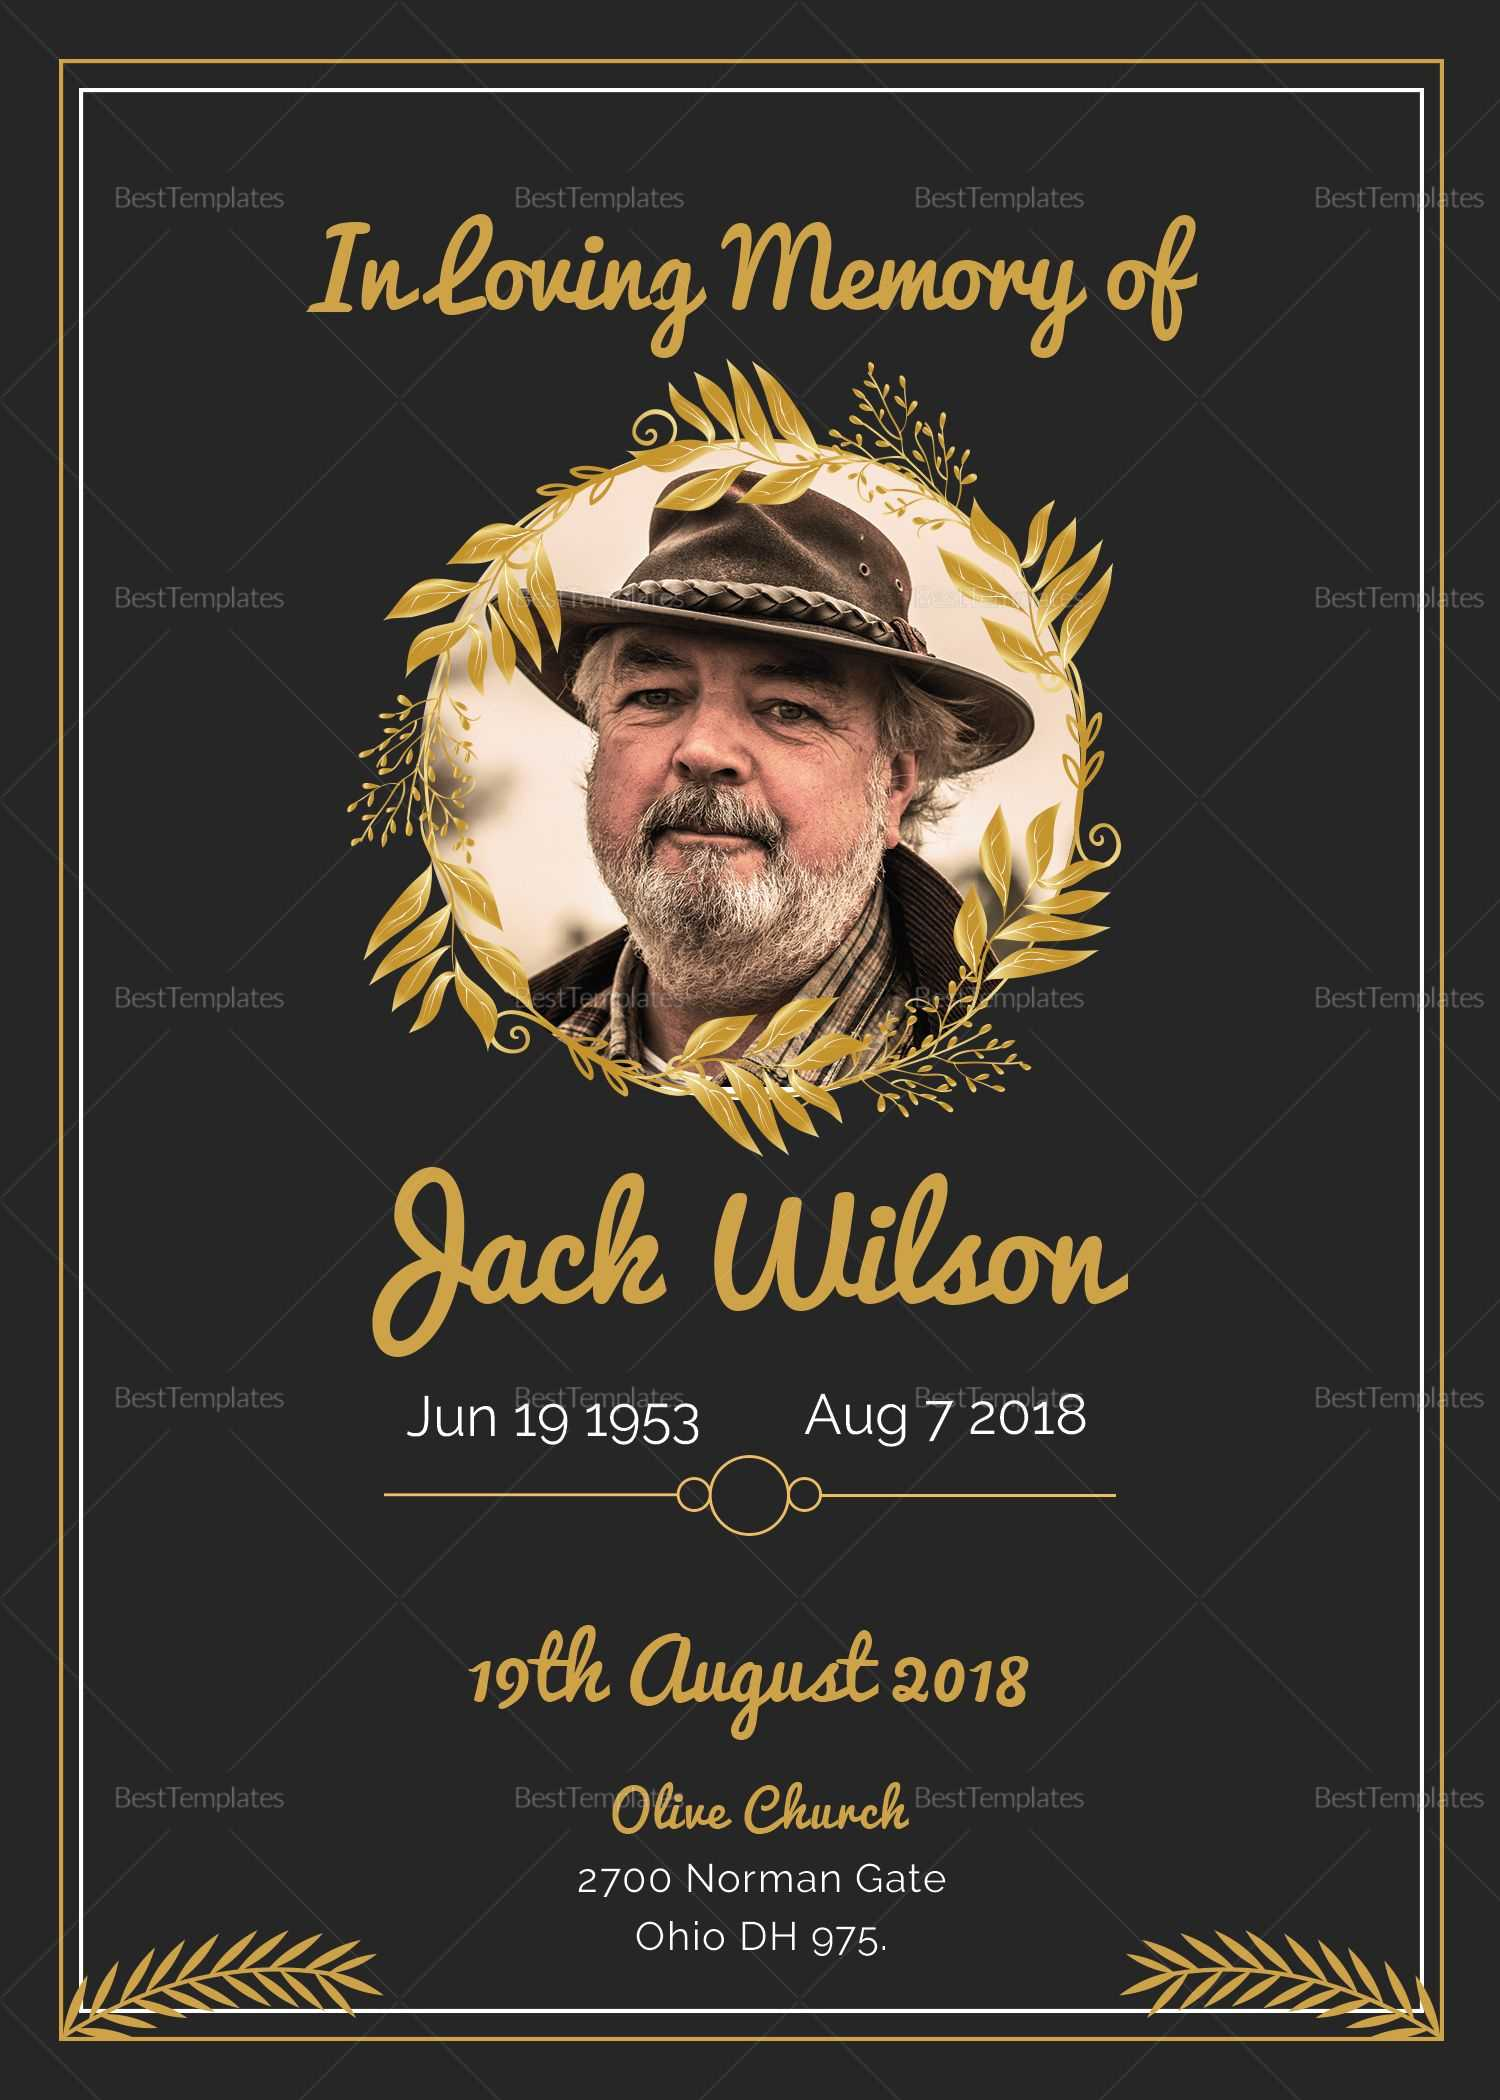 Pino Free Jay On Celebration Of Life | Funeral Within Funeral Invitation Card Template